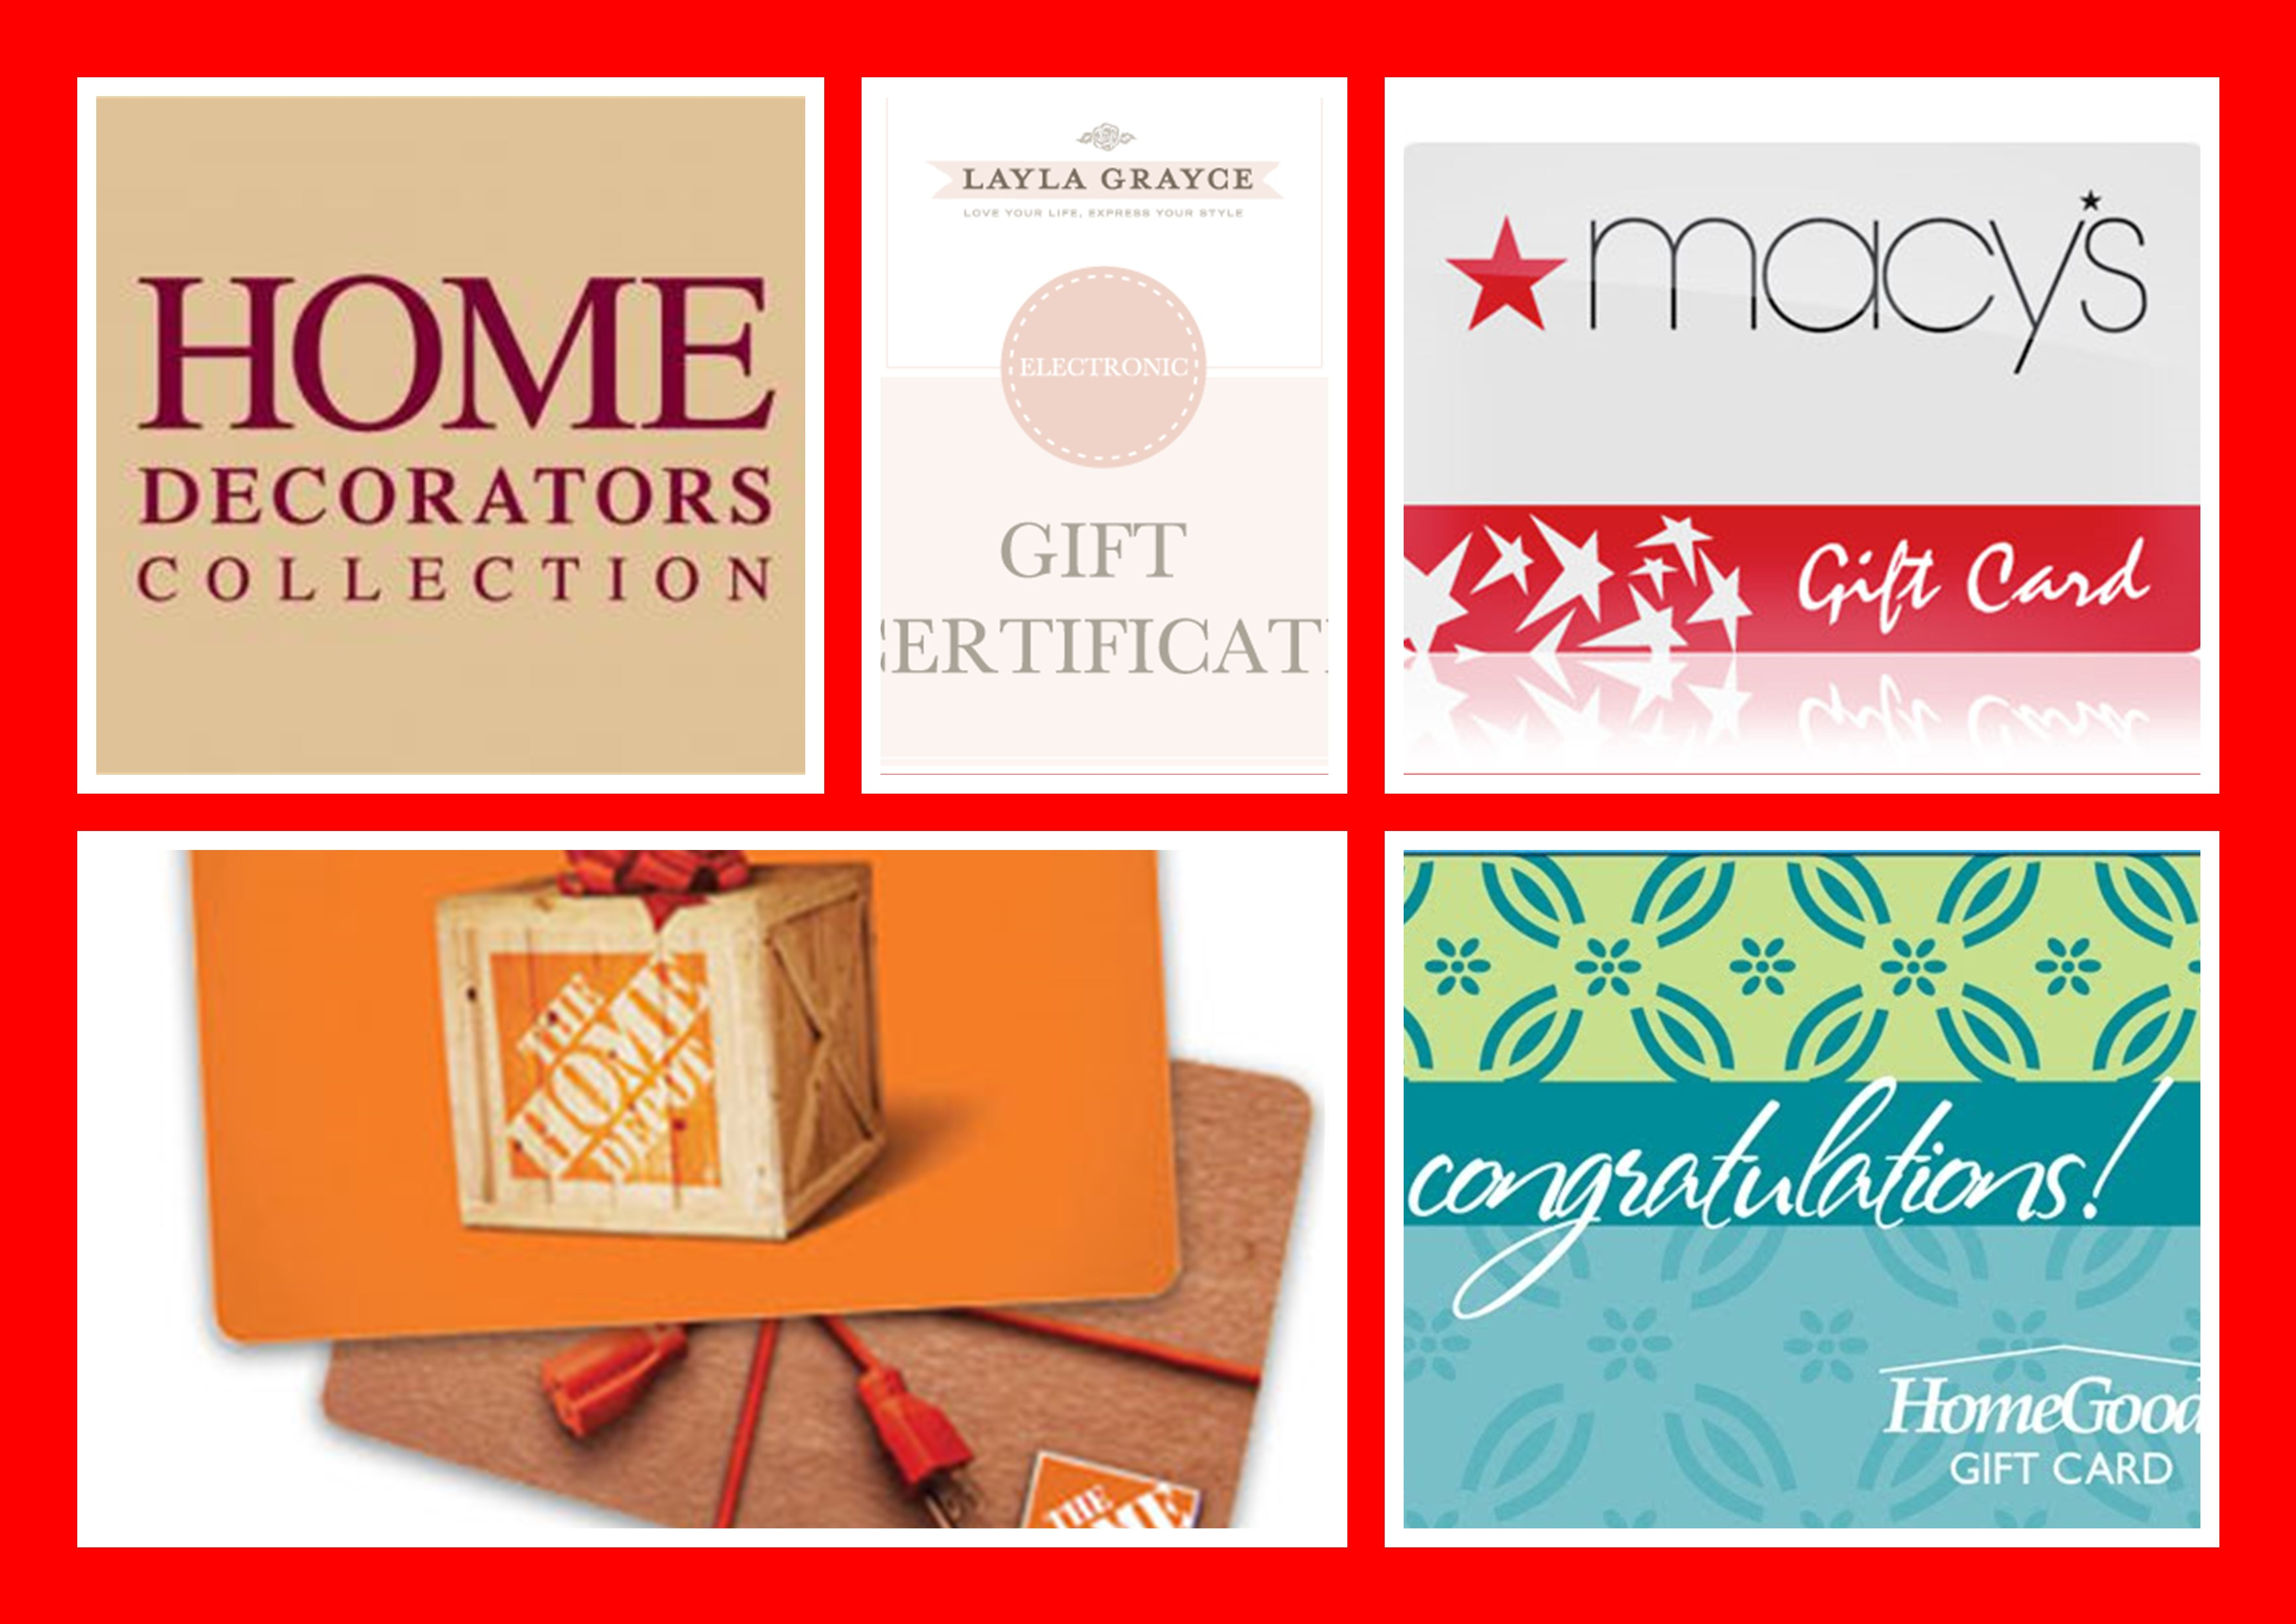 Real Estate Client Home Improvement and Home Decor Gift Cards